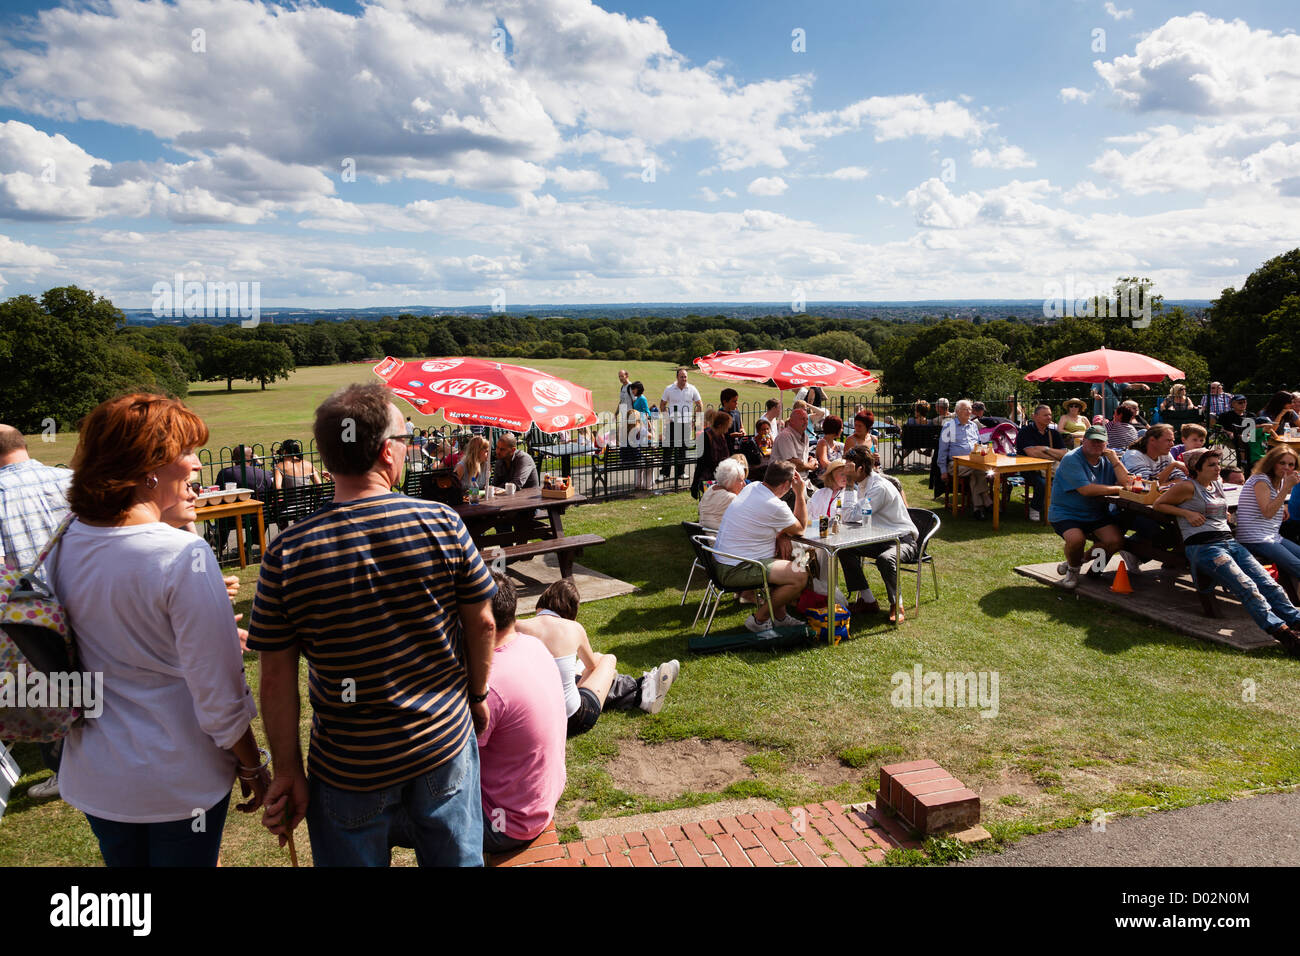 Open air summer concert at Oxleas Wood Cafe, London, UK, with Gambler. - Stock Image